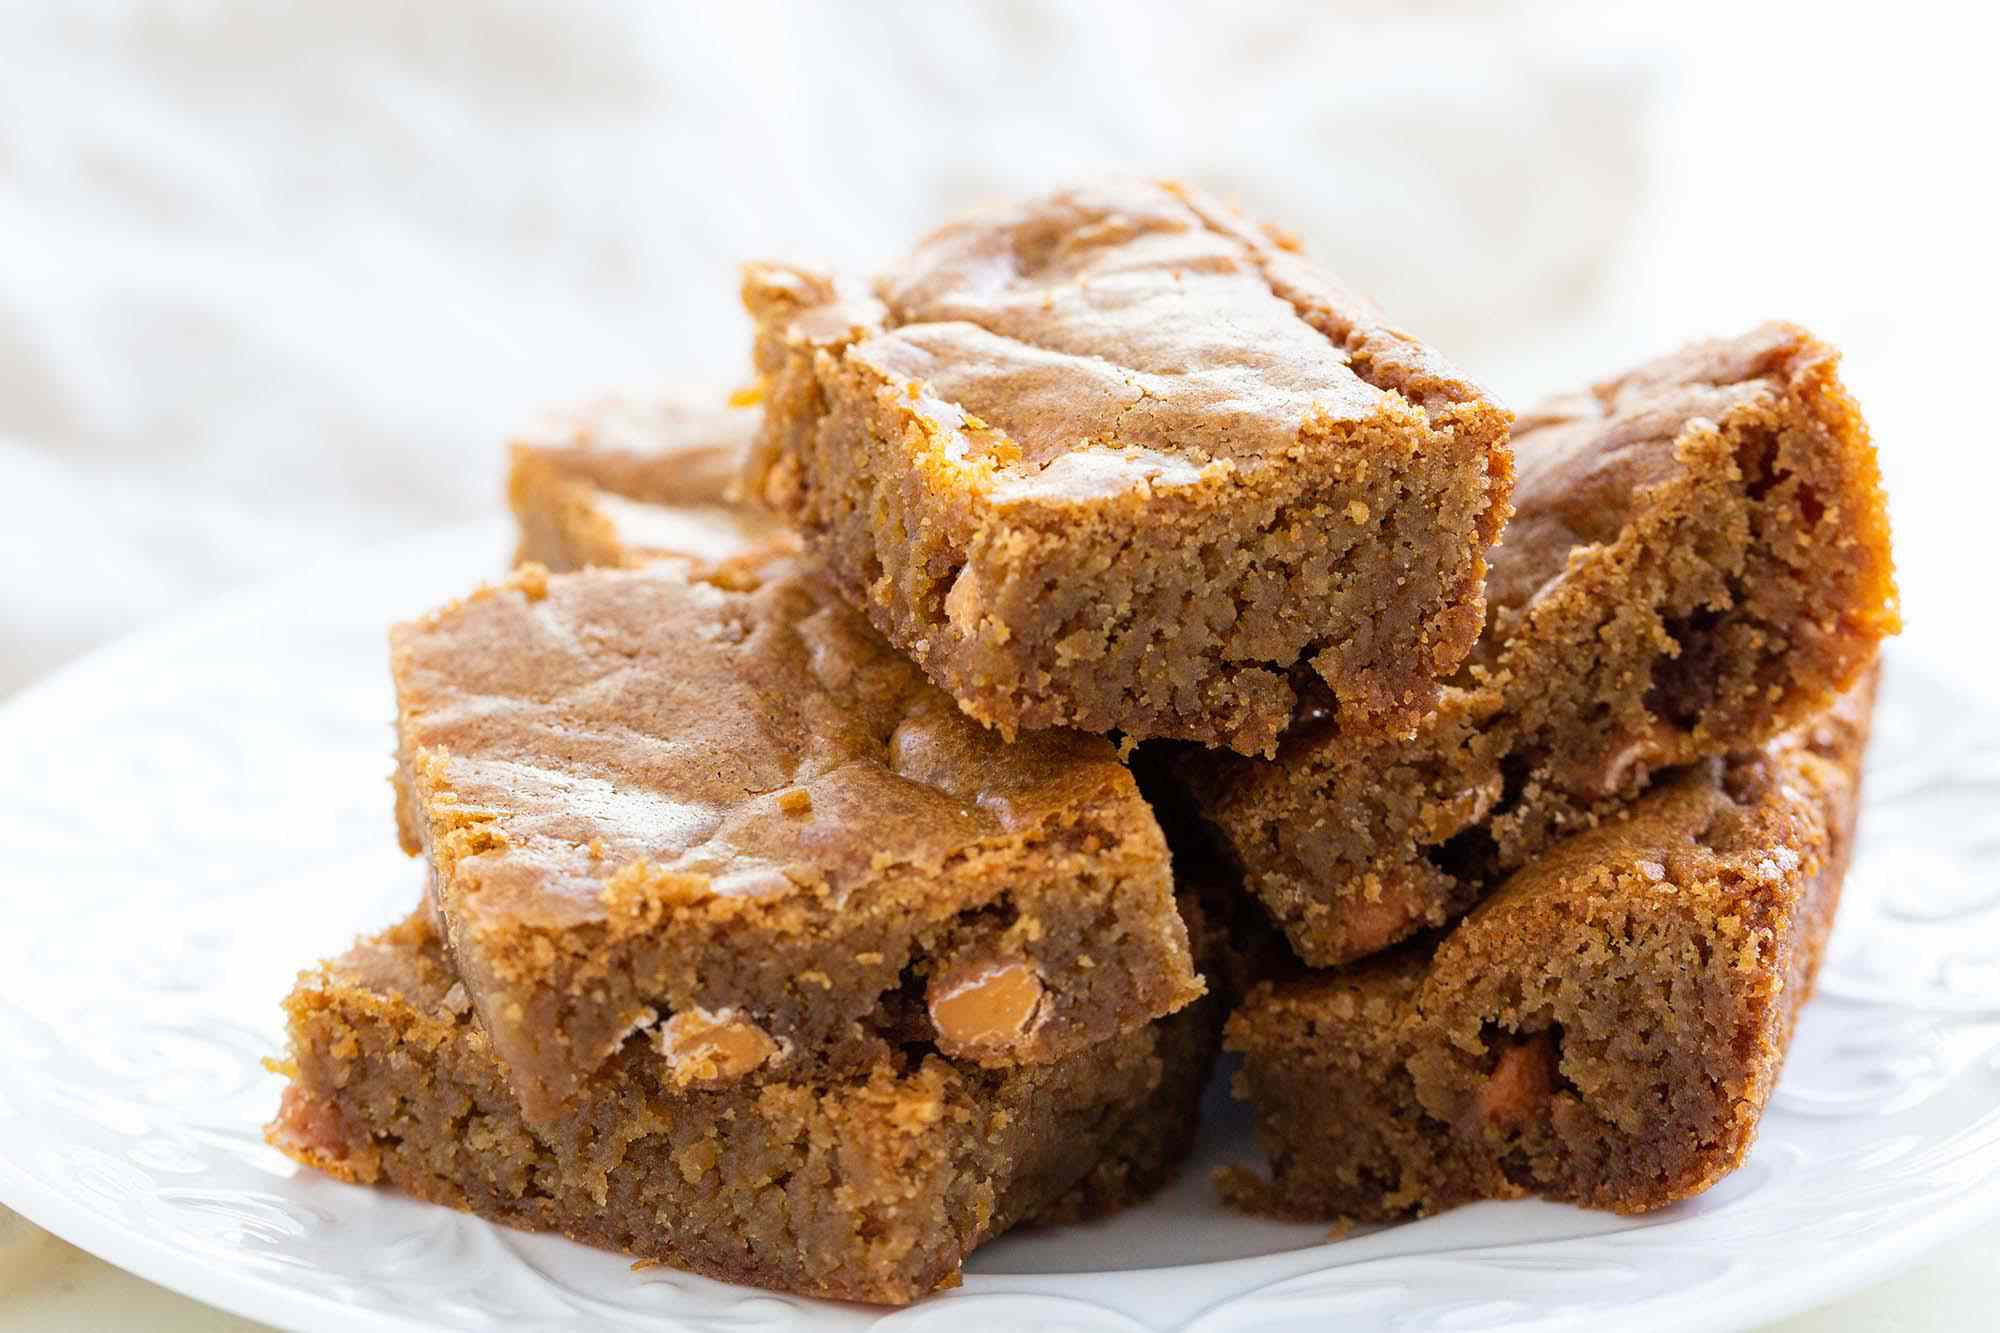 Homemade blondie bars on a plate